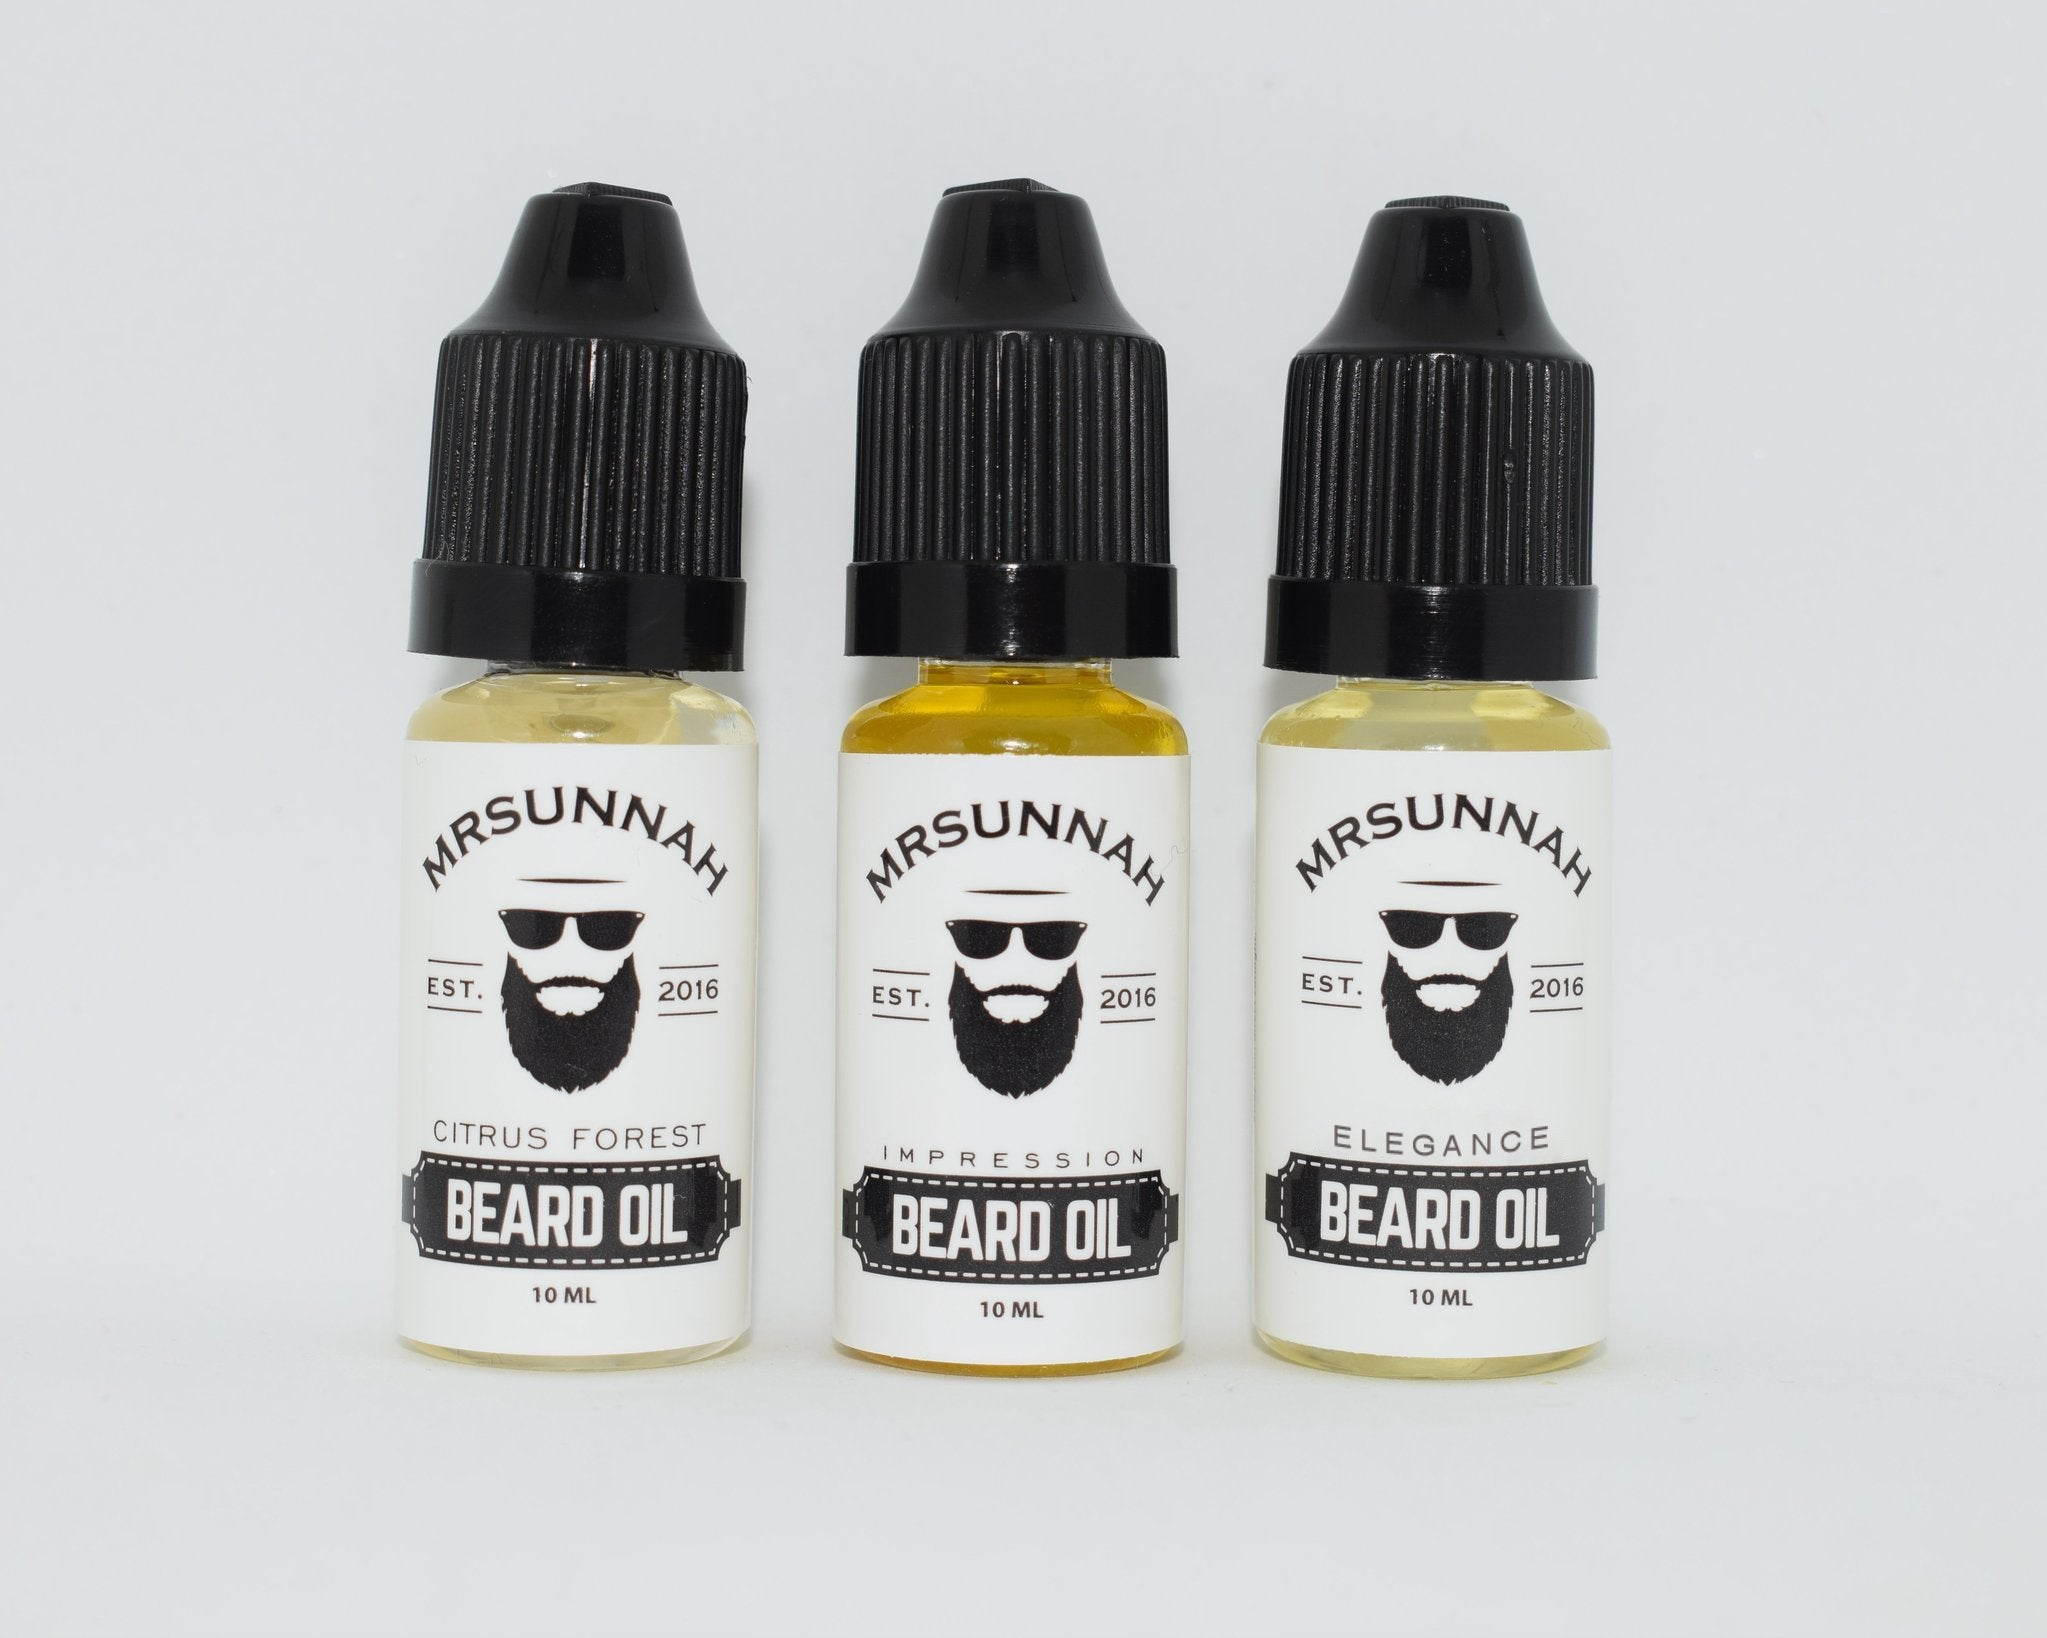 3 Beard Oil Set (10ml)